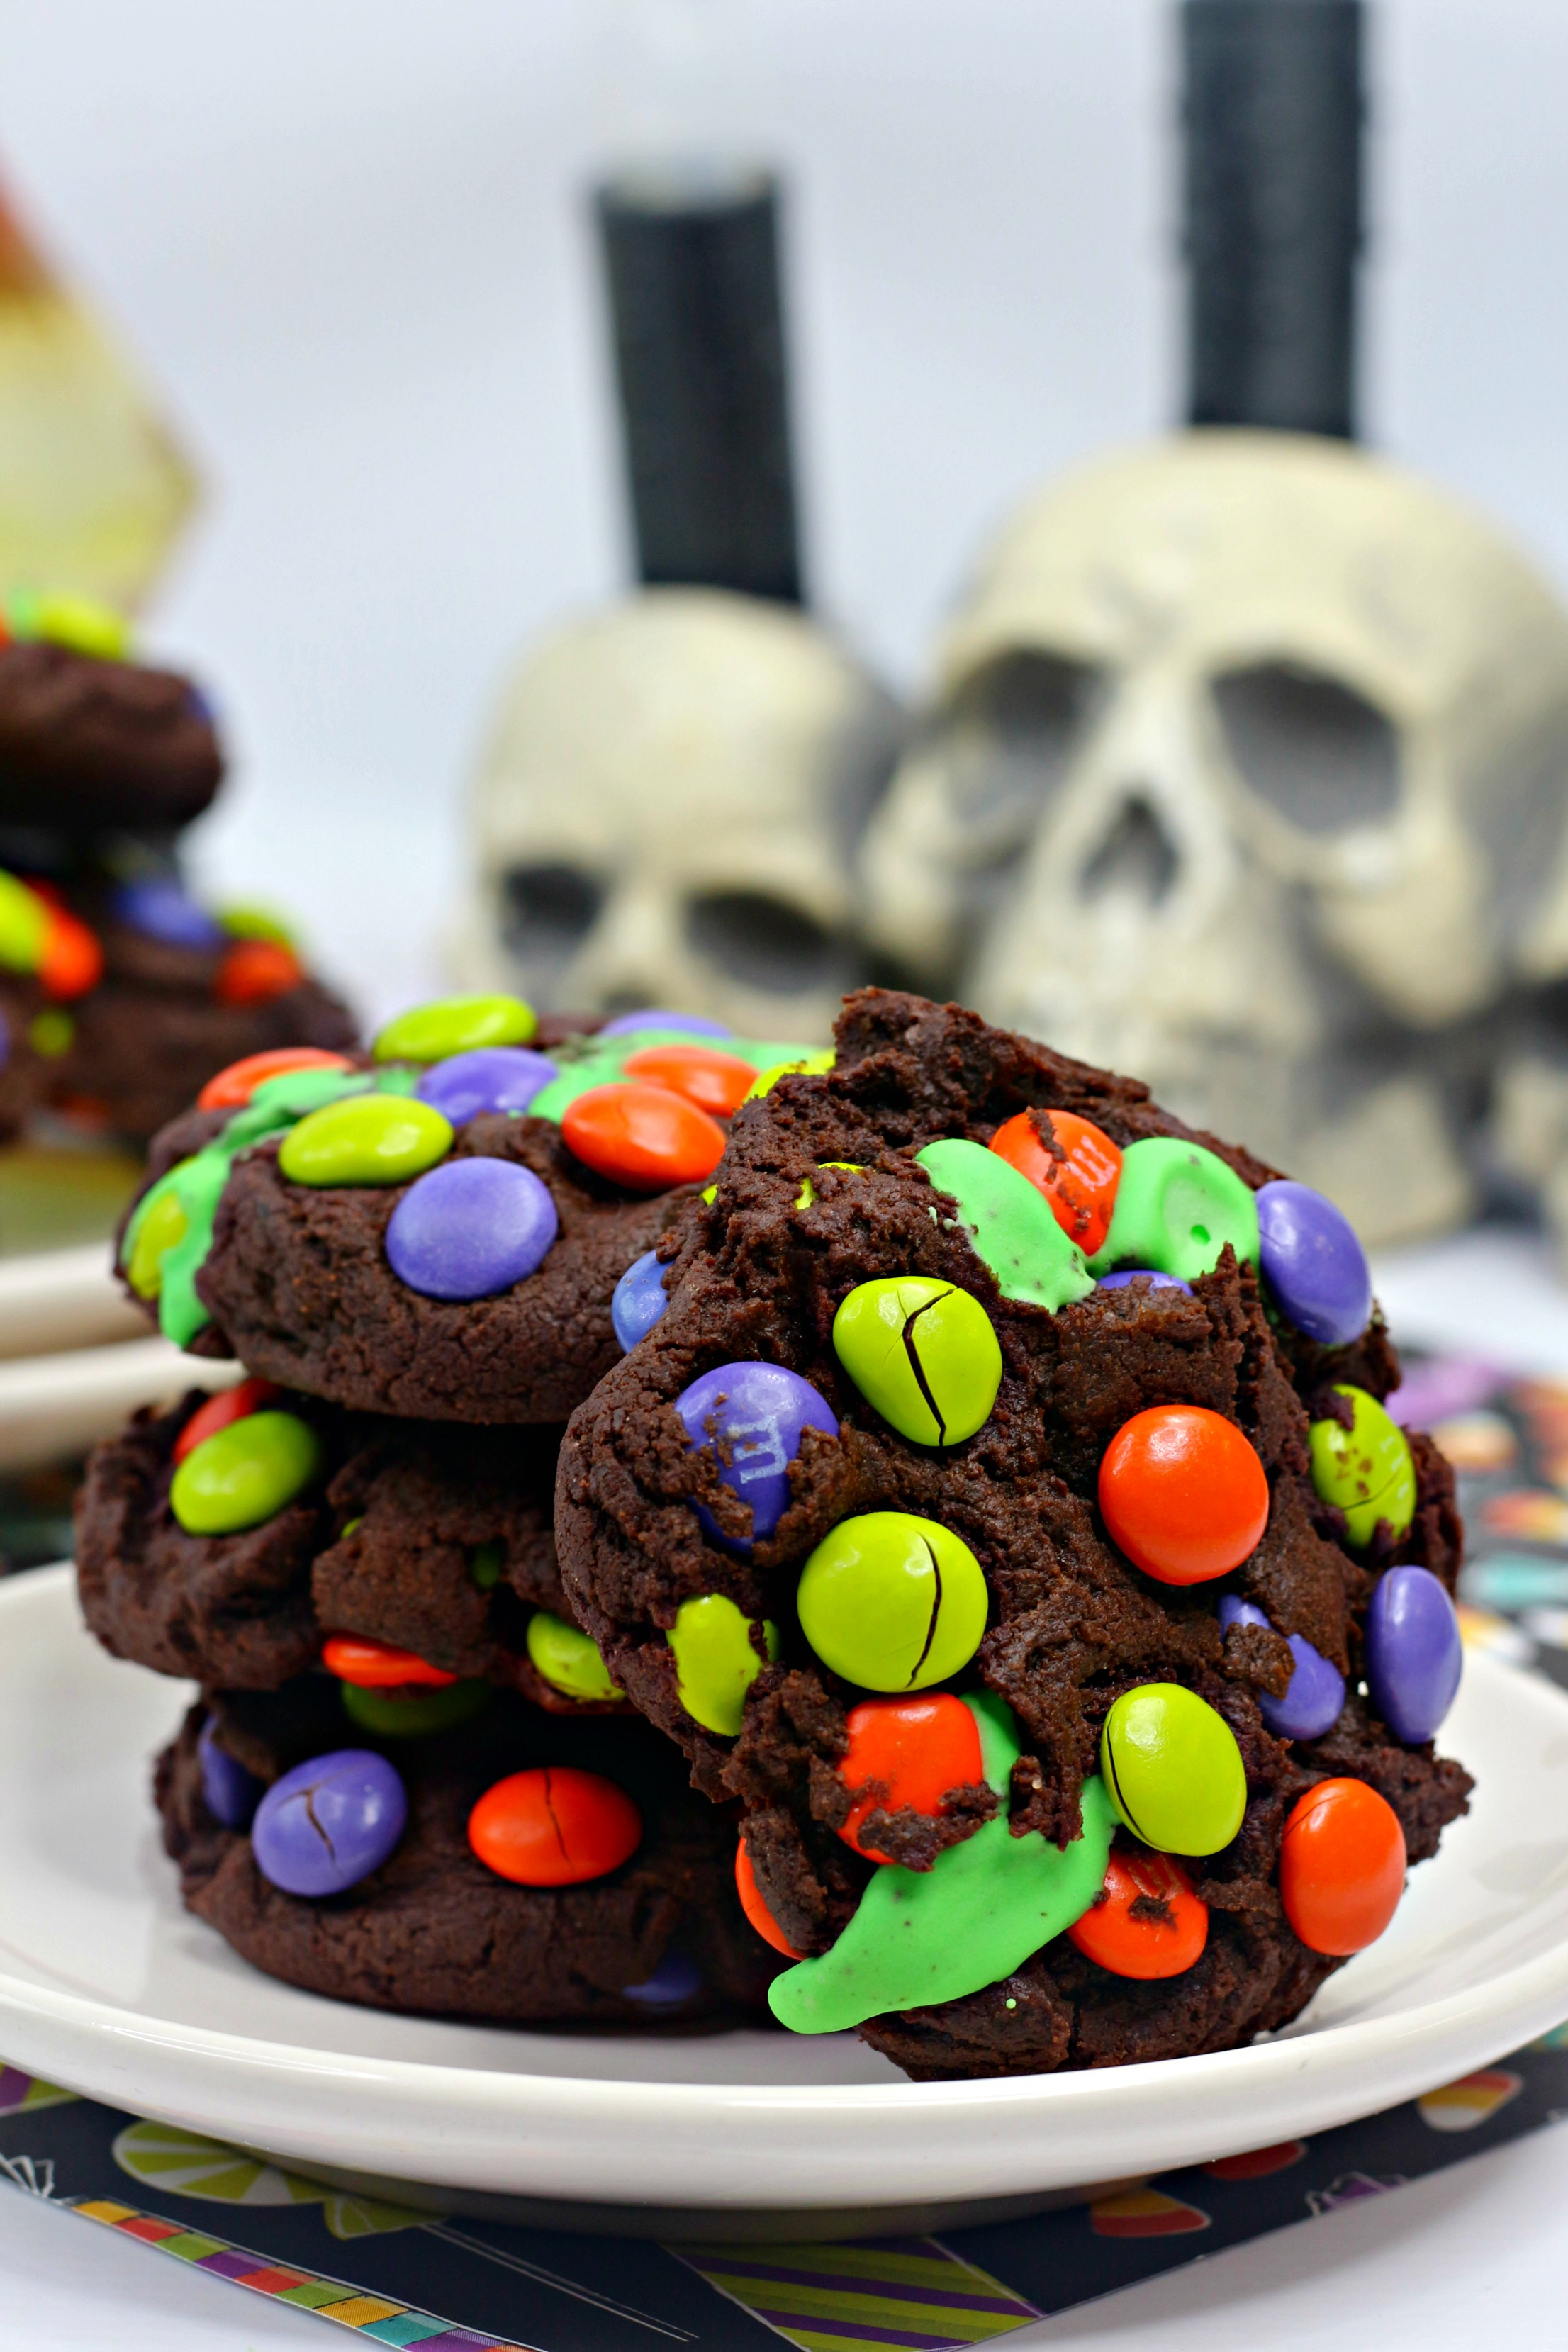 Hocus Pocus cookies, chocolate cookies with MMS